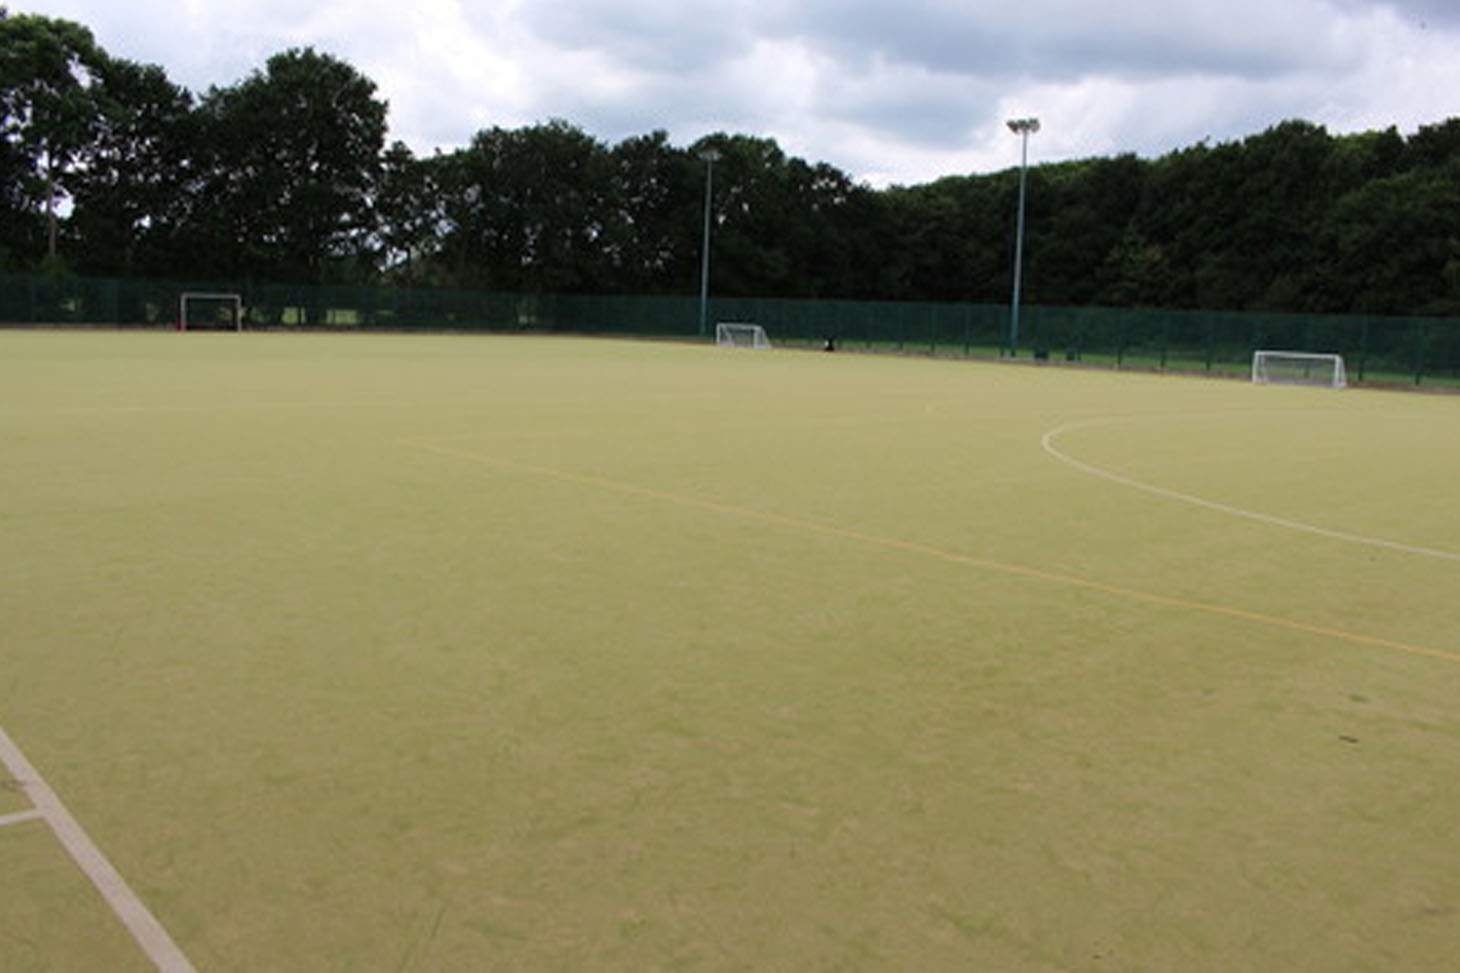 Light Hall School 11 a side | Astroturf football pitch